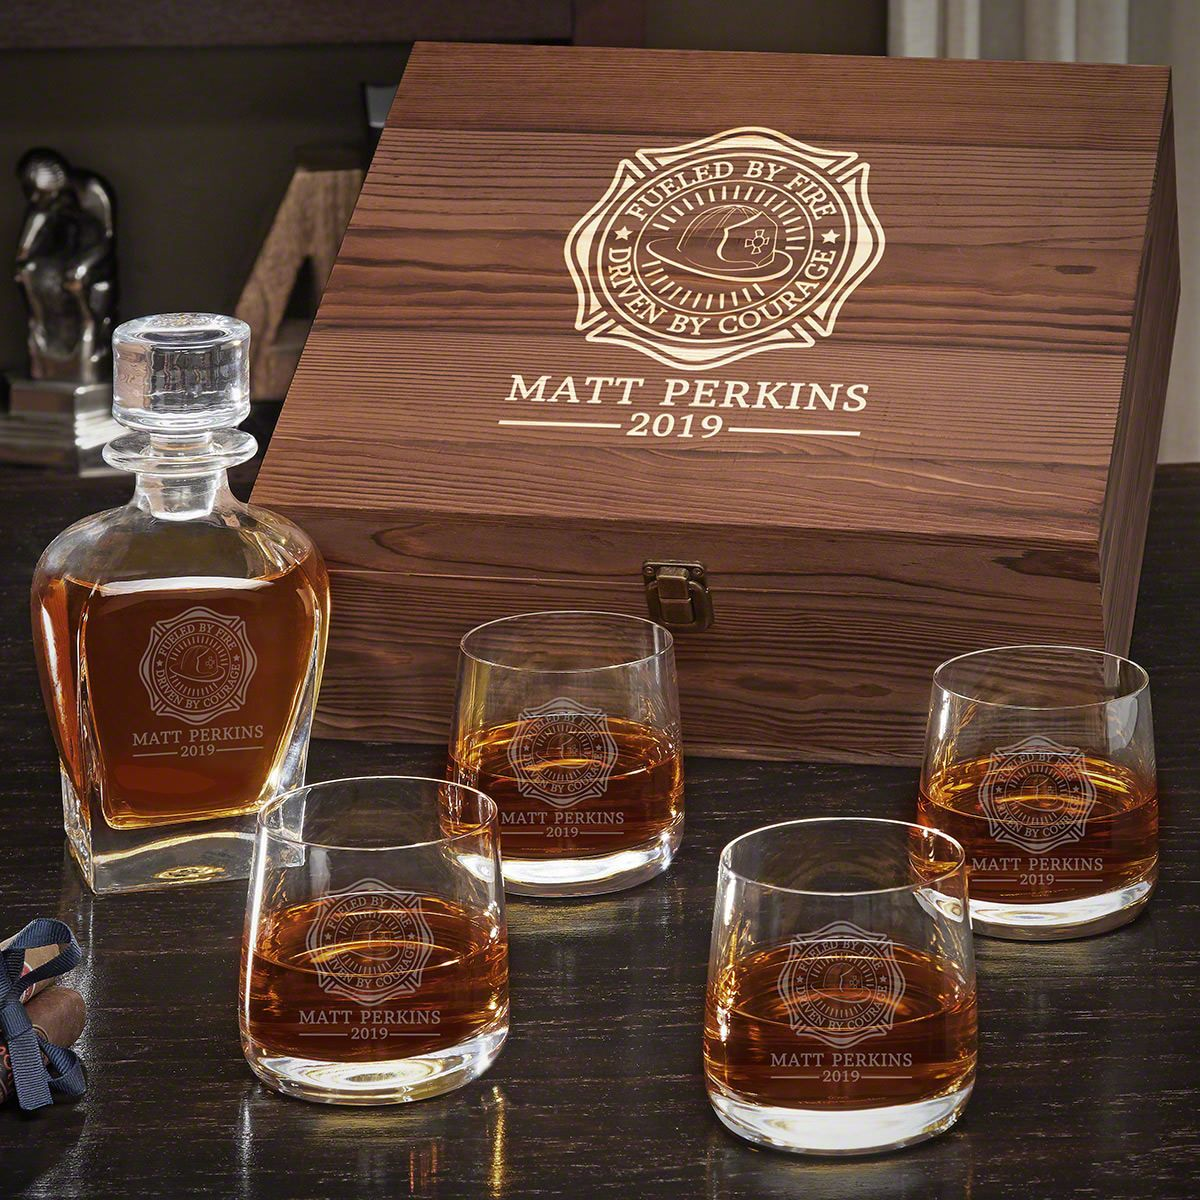 Fueled by Fire Draper Decanter Whiskey Box Set with Benson Glasses - Gift for Firefighters